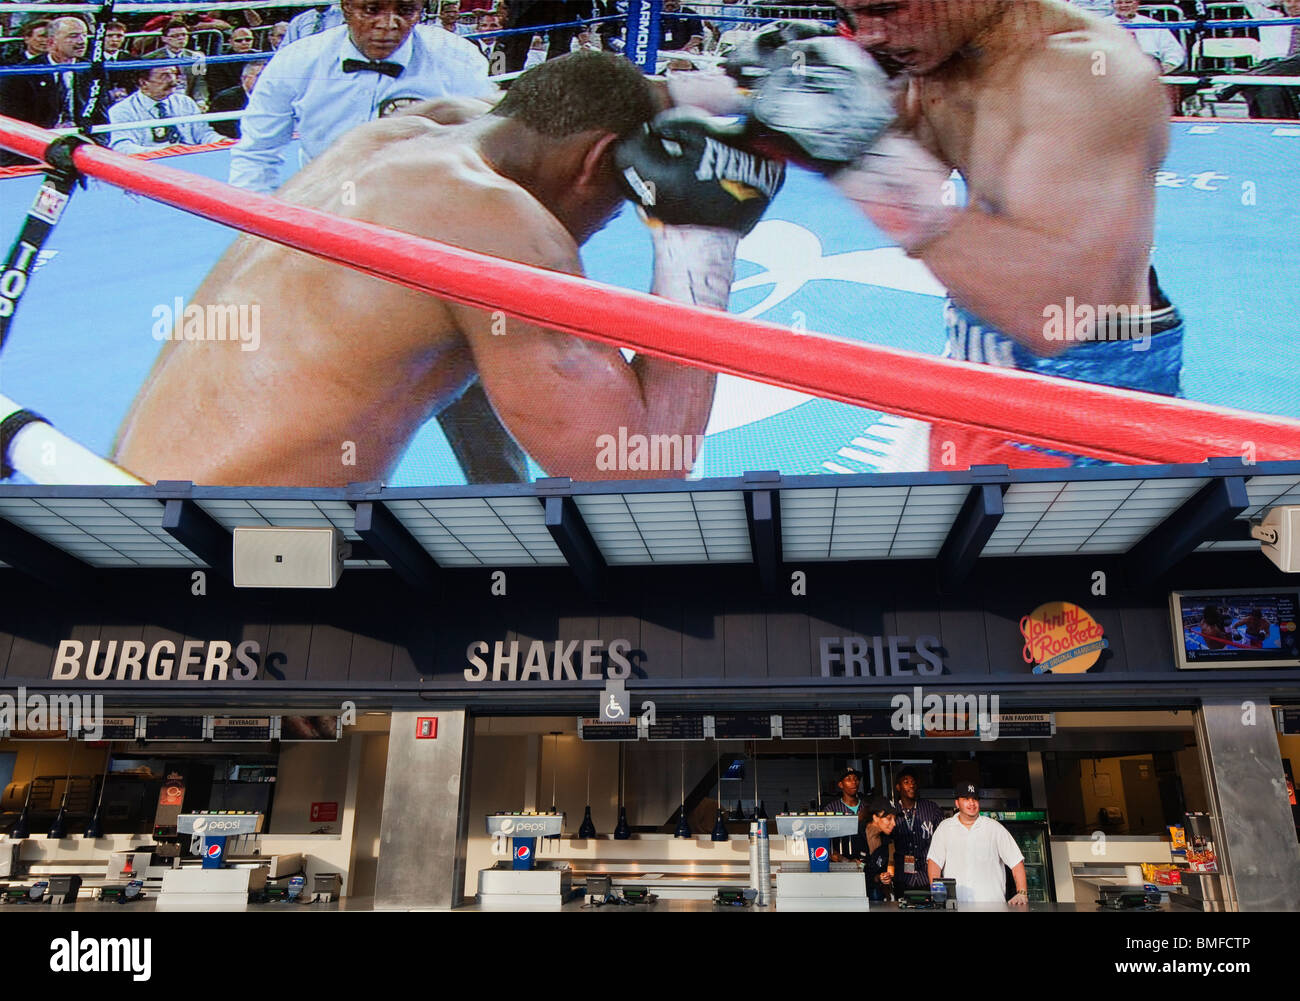 Yankee Stadium food stand workers look onto to a boxing match as the mega screen above them replays the action. - Stock Image